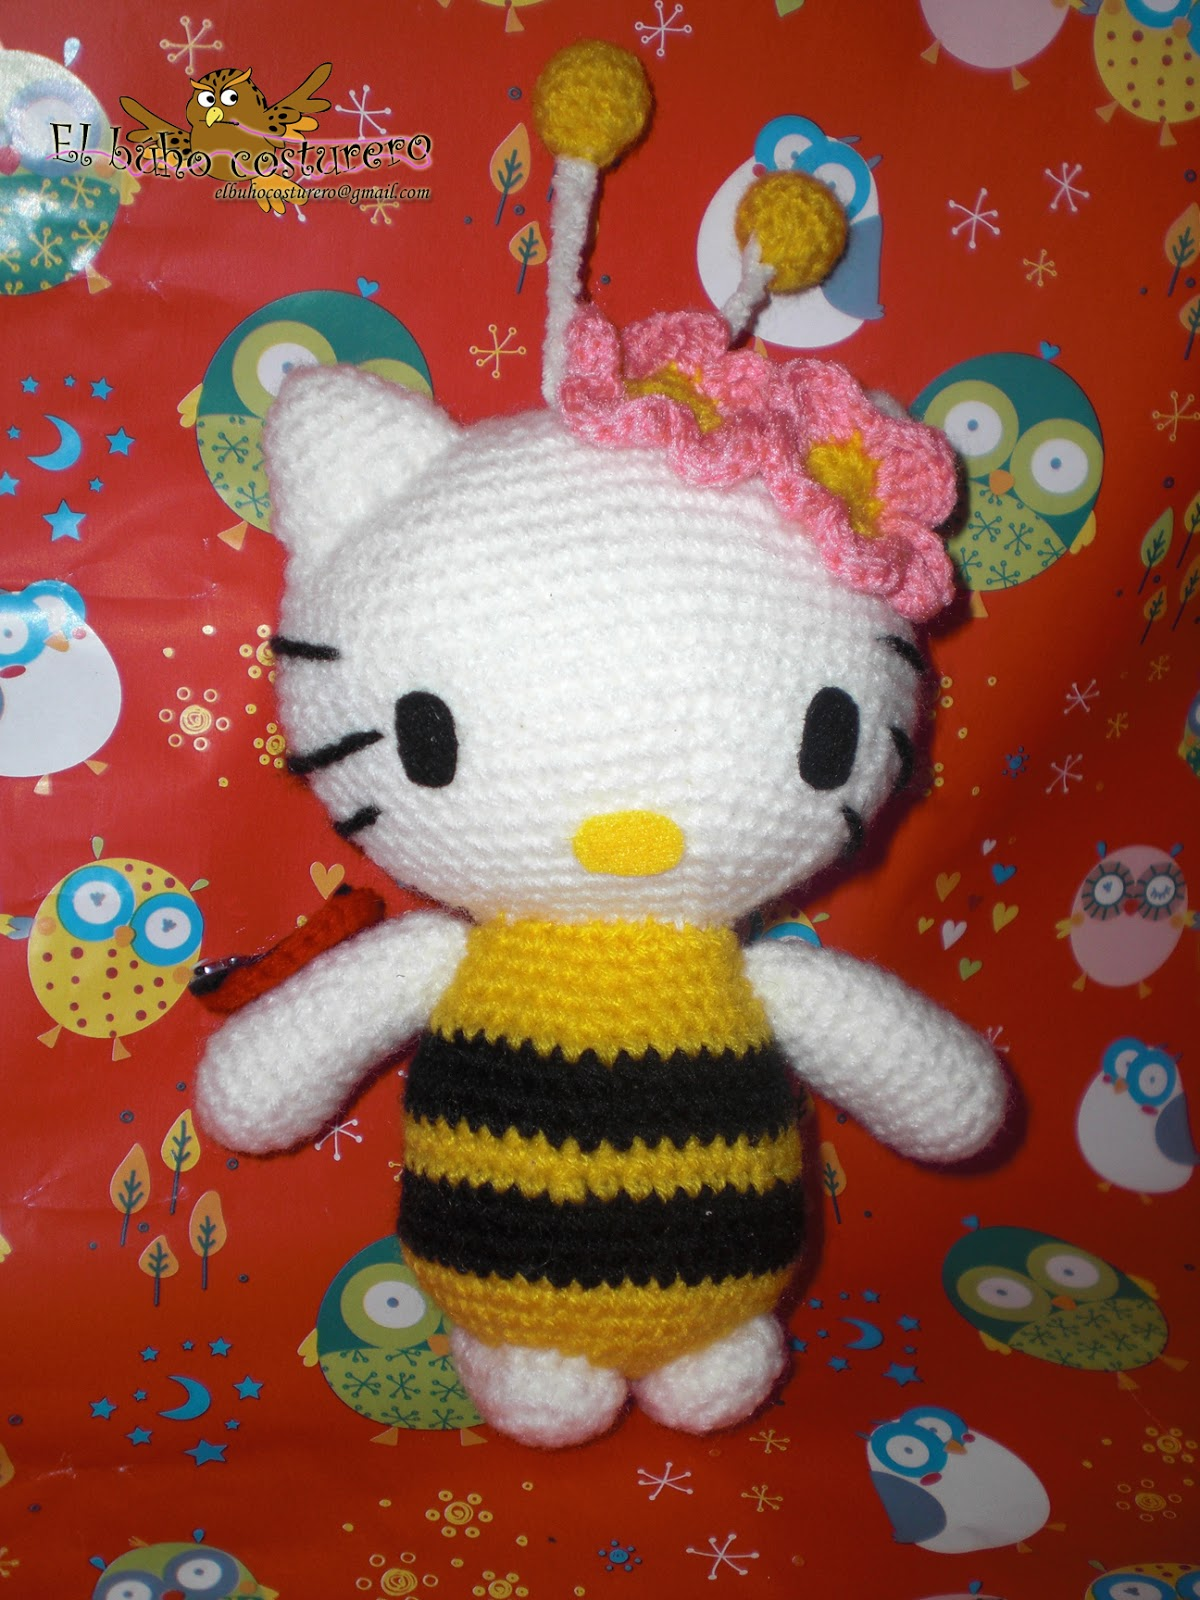 Kitty Abeja Amigurumi : El b?ho costurero: Amigurumi Hello Kitty